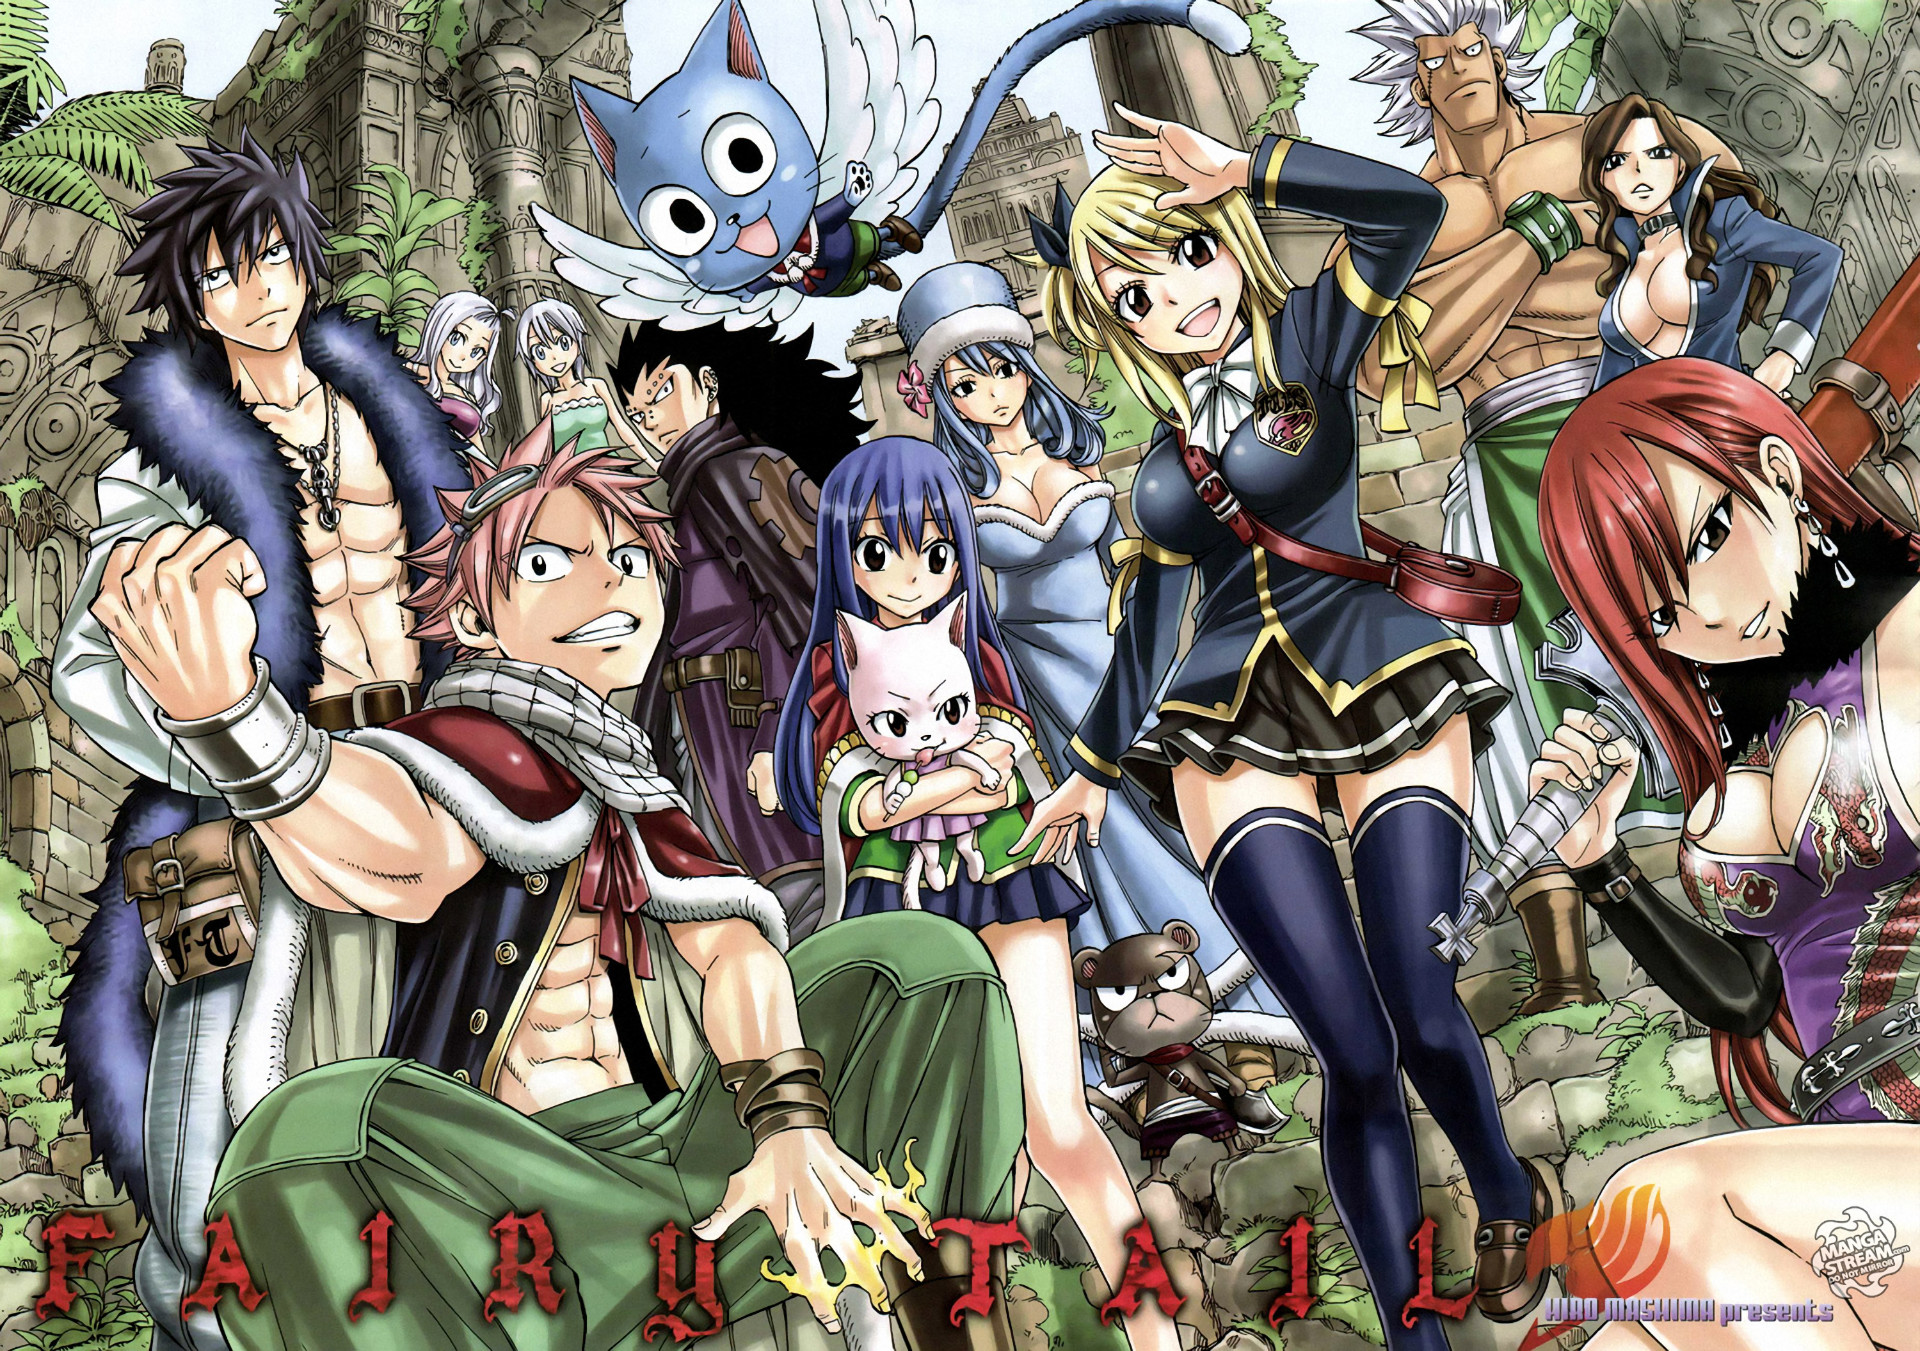 1920x1351 Anime - Fairy Tail Charles (Fairy Tail) Lucy Heartfilia Natsu Dragneel Erza  Scarlet Wendy